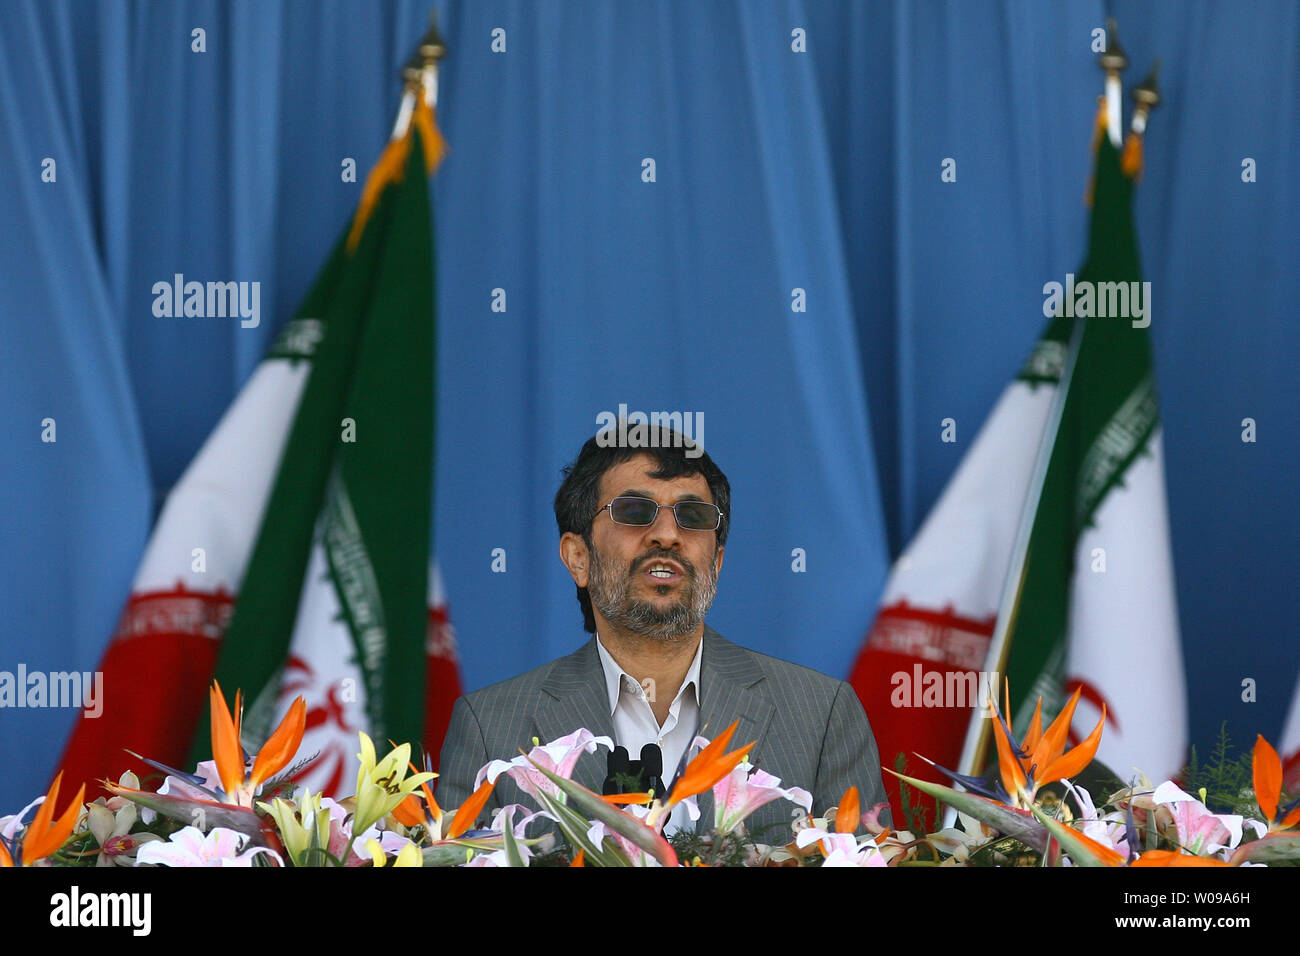 Iranian President Mahmoud Ahmadinejad speaks a pause in the National Army Day military parade in front of the mausoleum of the Iran's late leader Ayatollah Khomeini in Tehran, Iran on April 18, 2011. The Iranian President Mahmoud Ahmadinejad used the occasion to accuse the United States for sowing discord in the Middle East.    UPI/Maryam Rahmanian - Stock Image